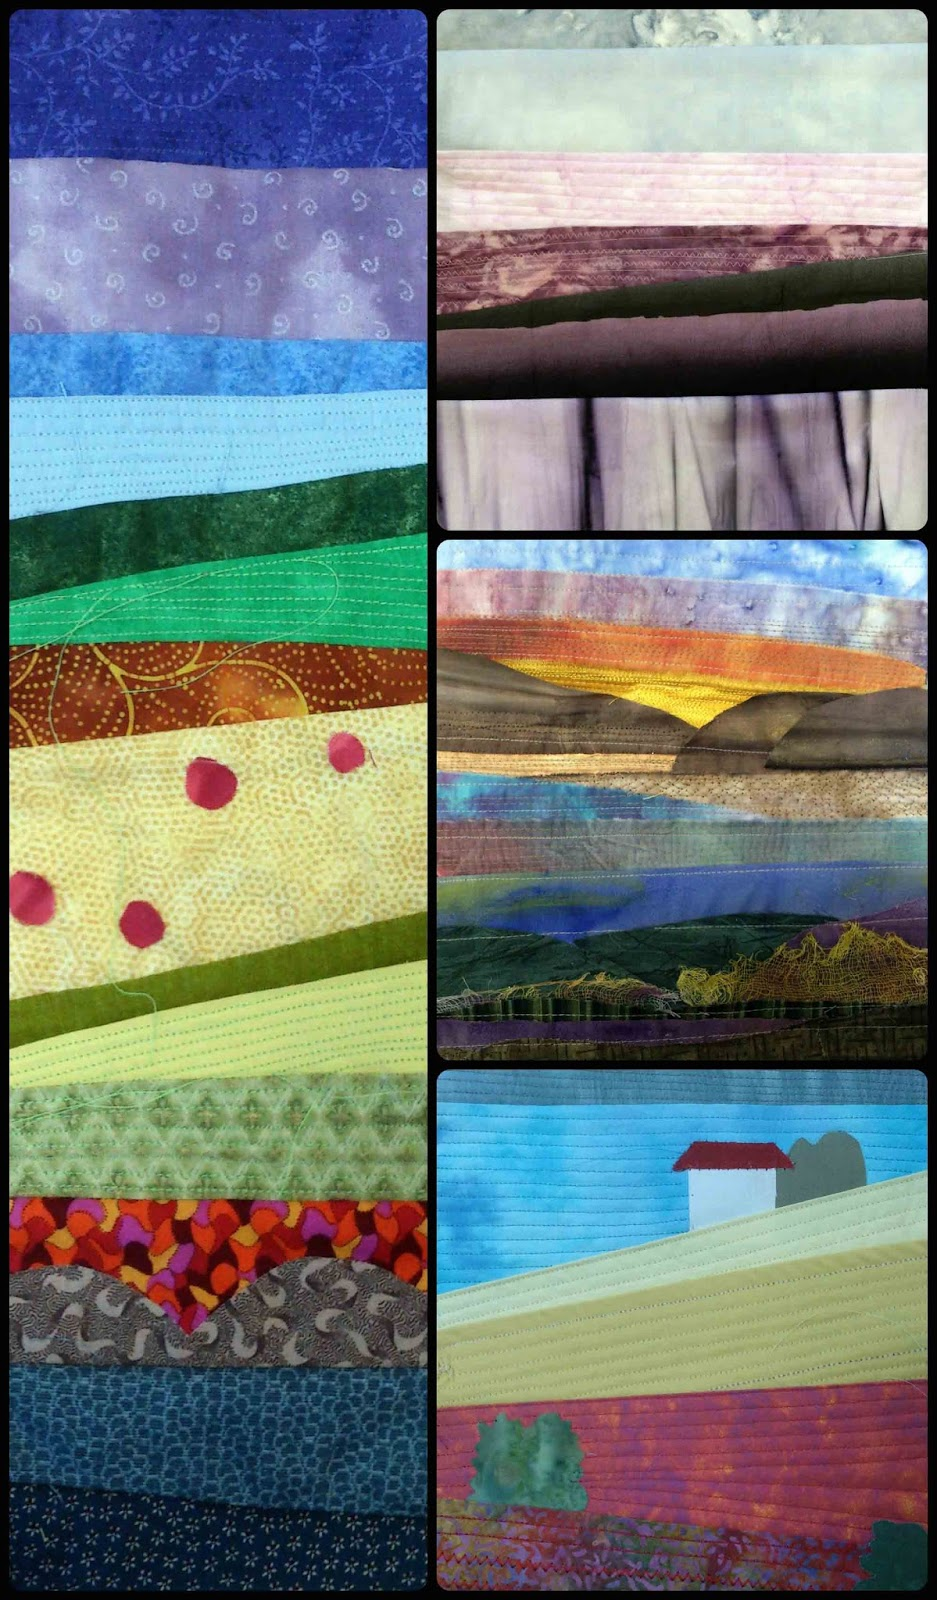 Landscape quilting workshops @Quilt Routes